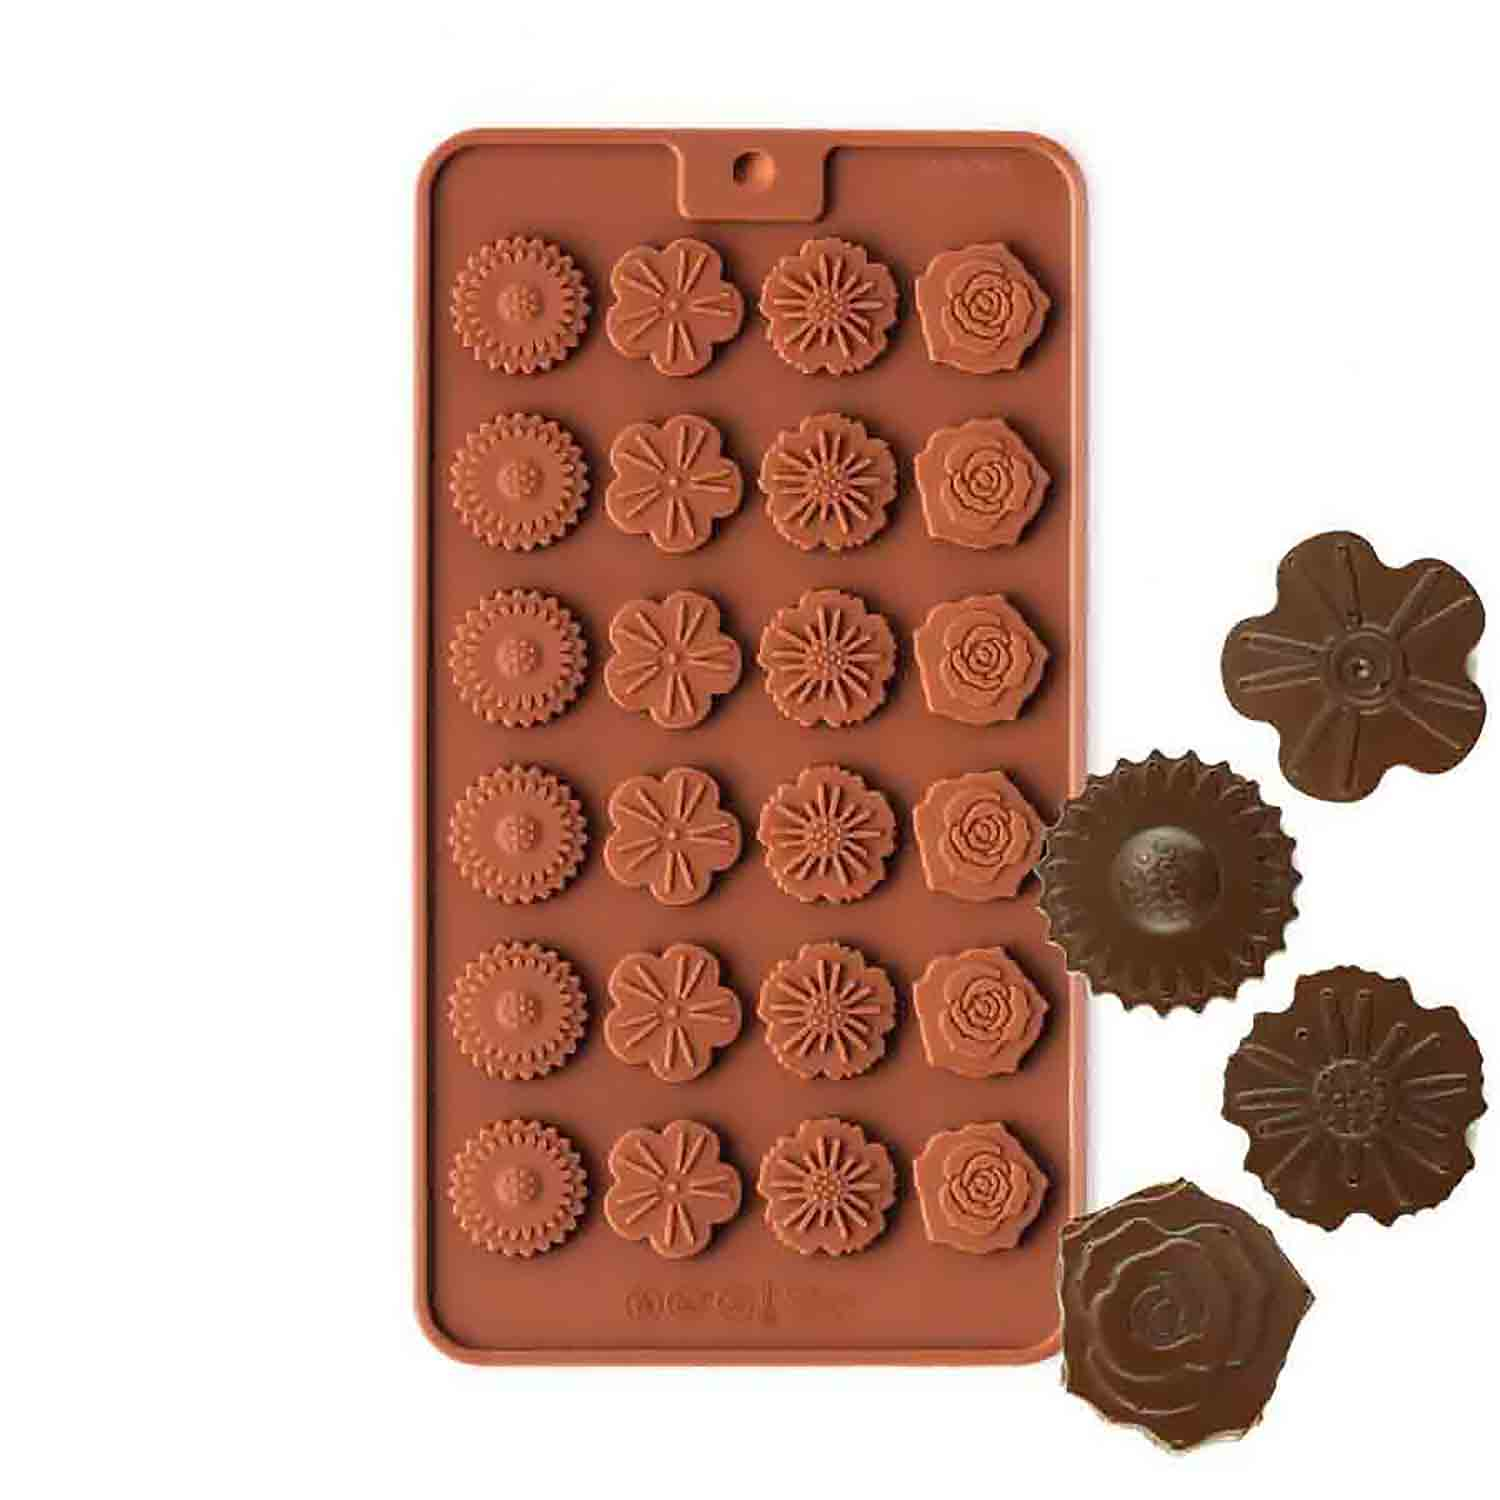 Flower Medallions Silicone Chocolate Candy Mold